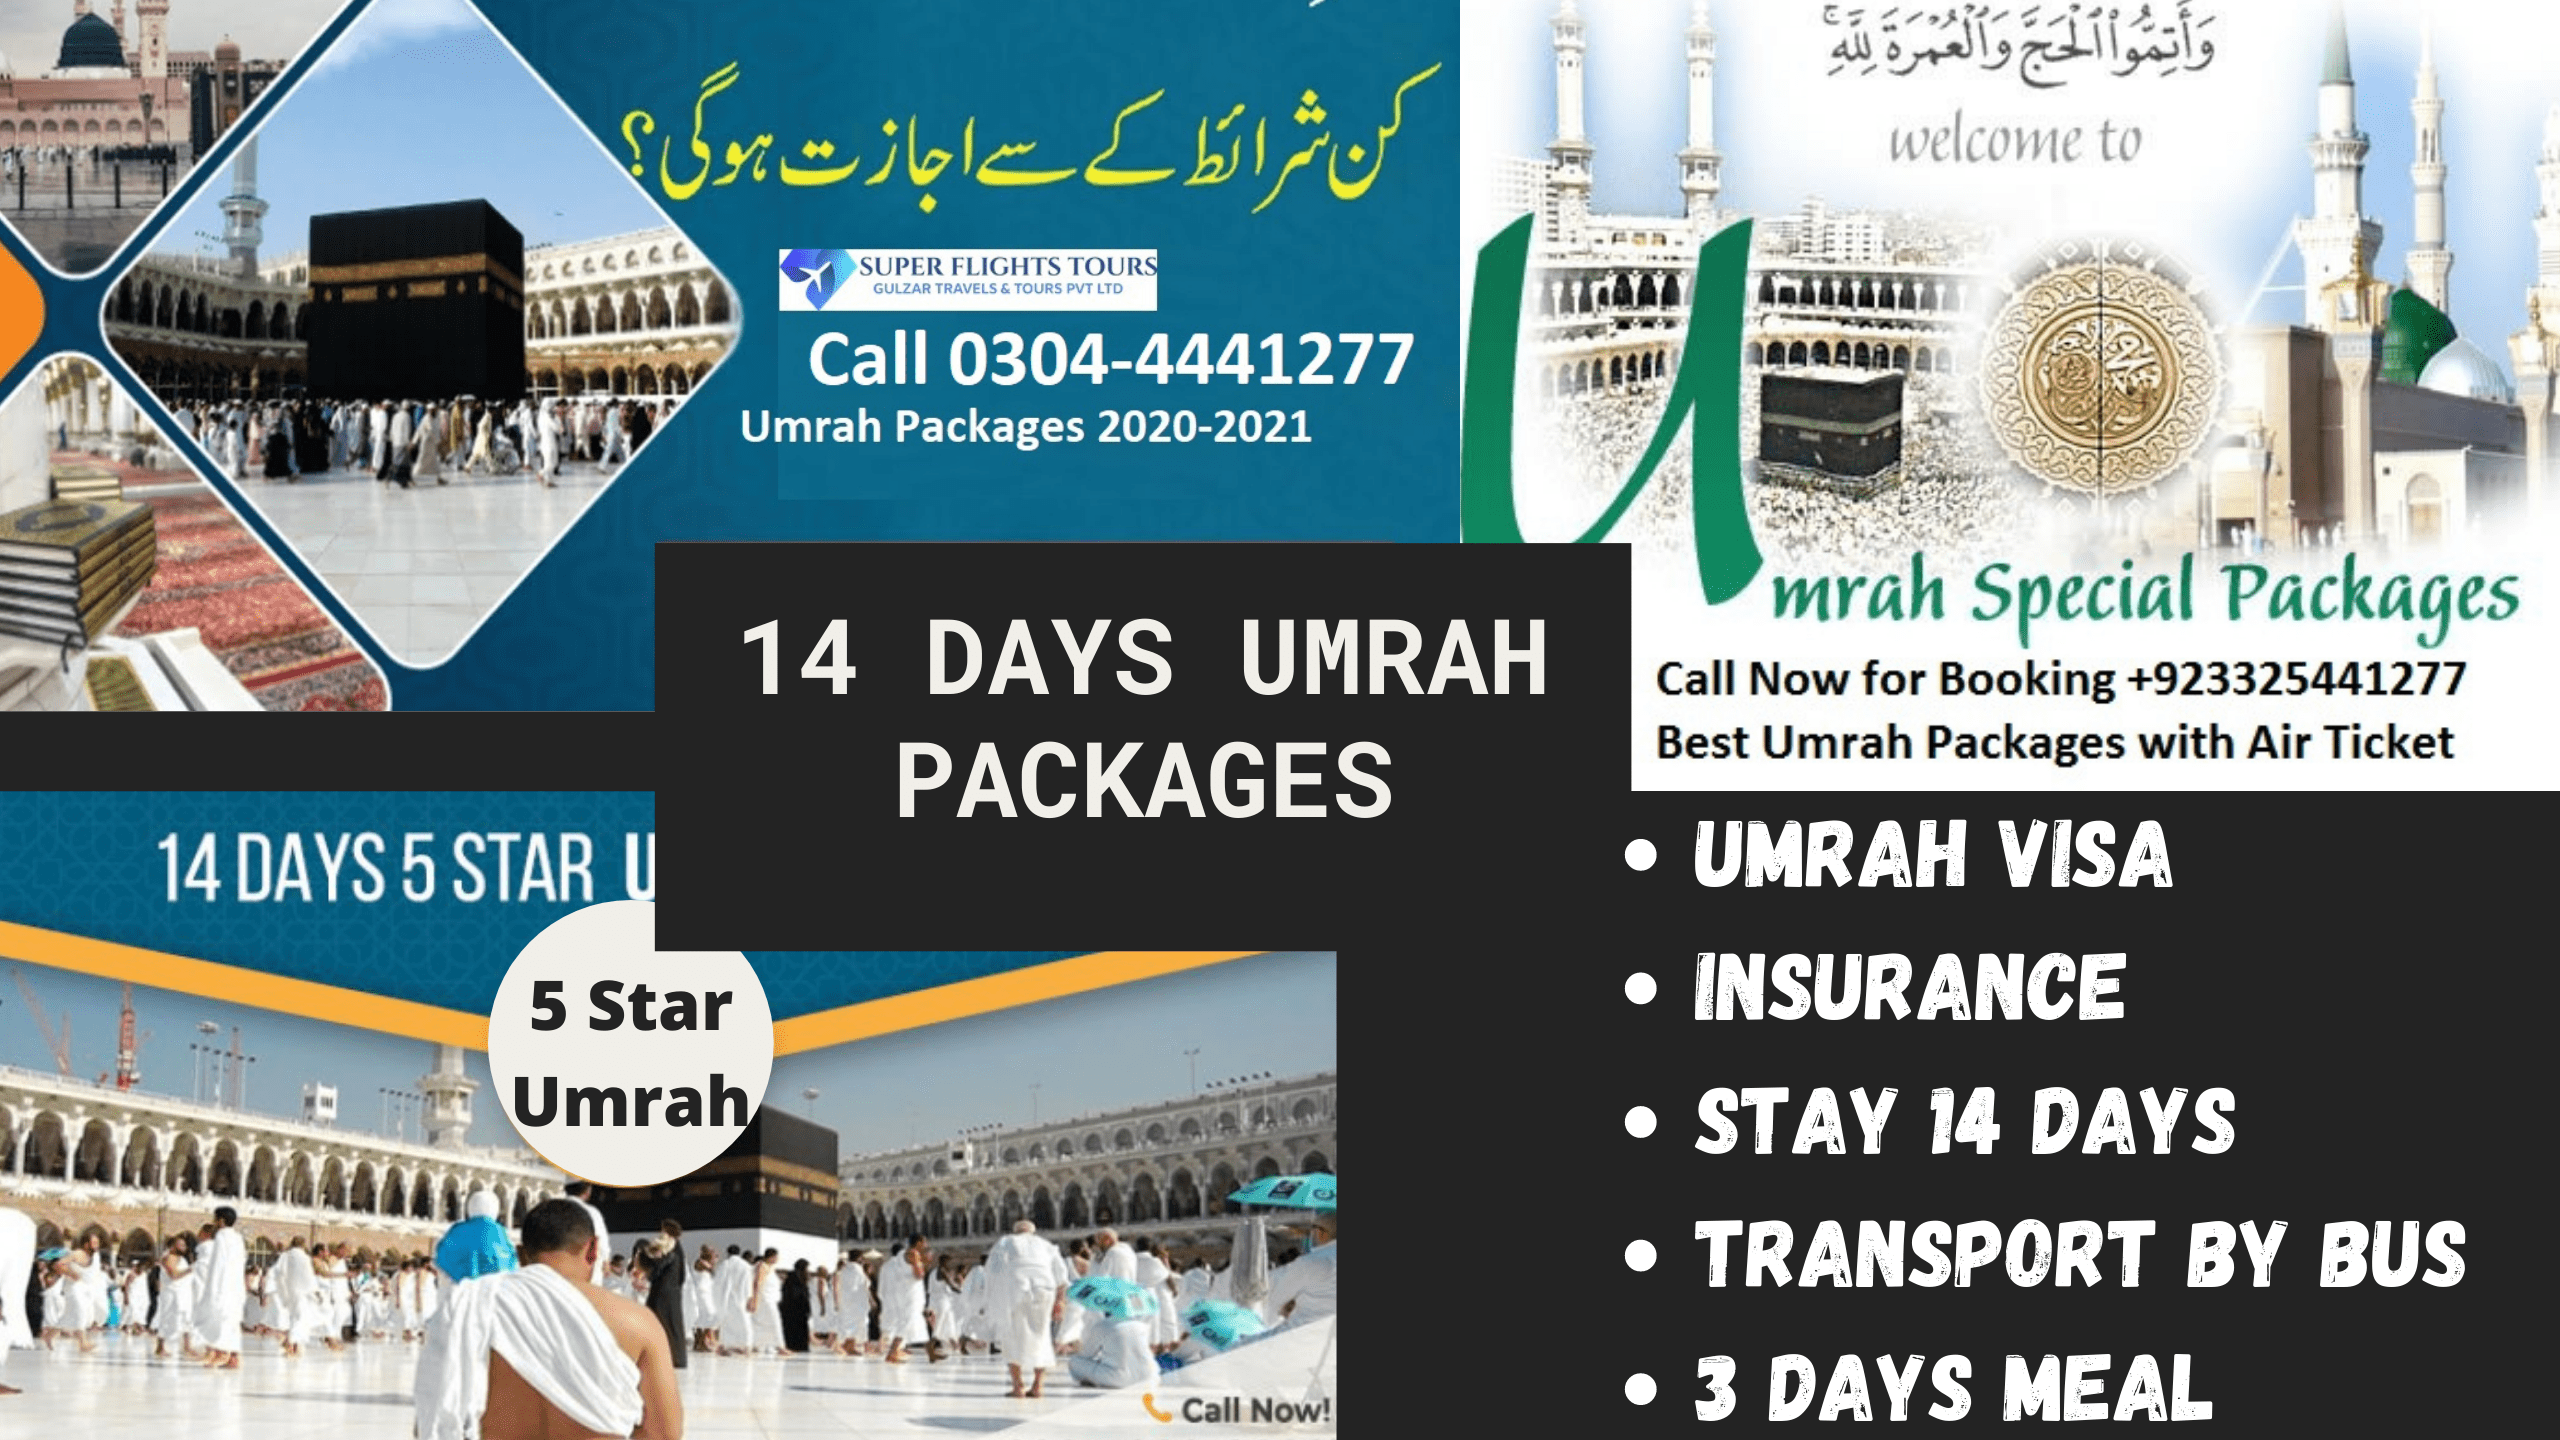 Umrah Packages November 2020 Islamabad Rawalpindi Pakistan